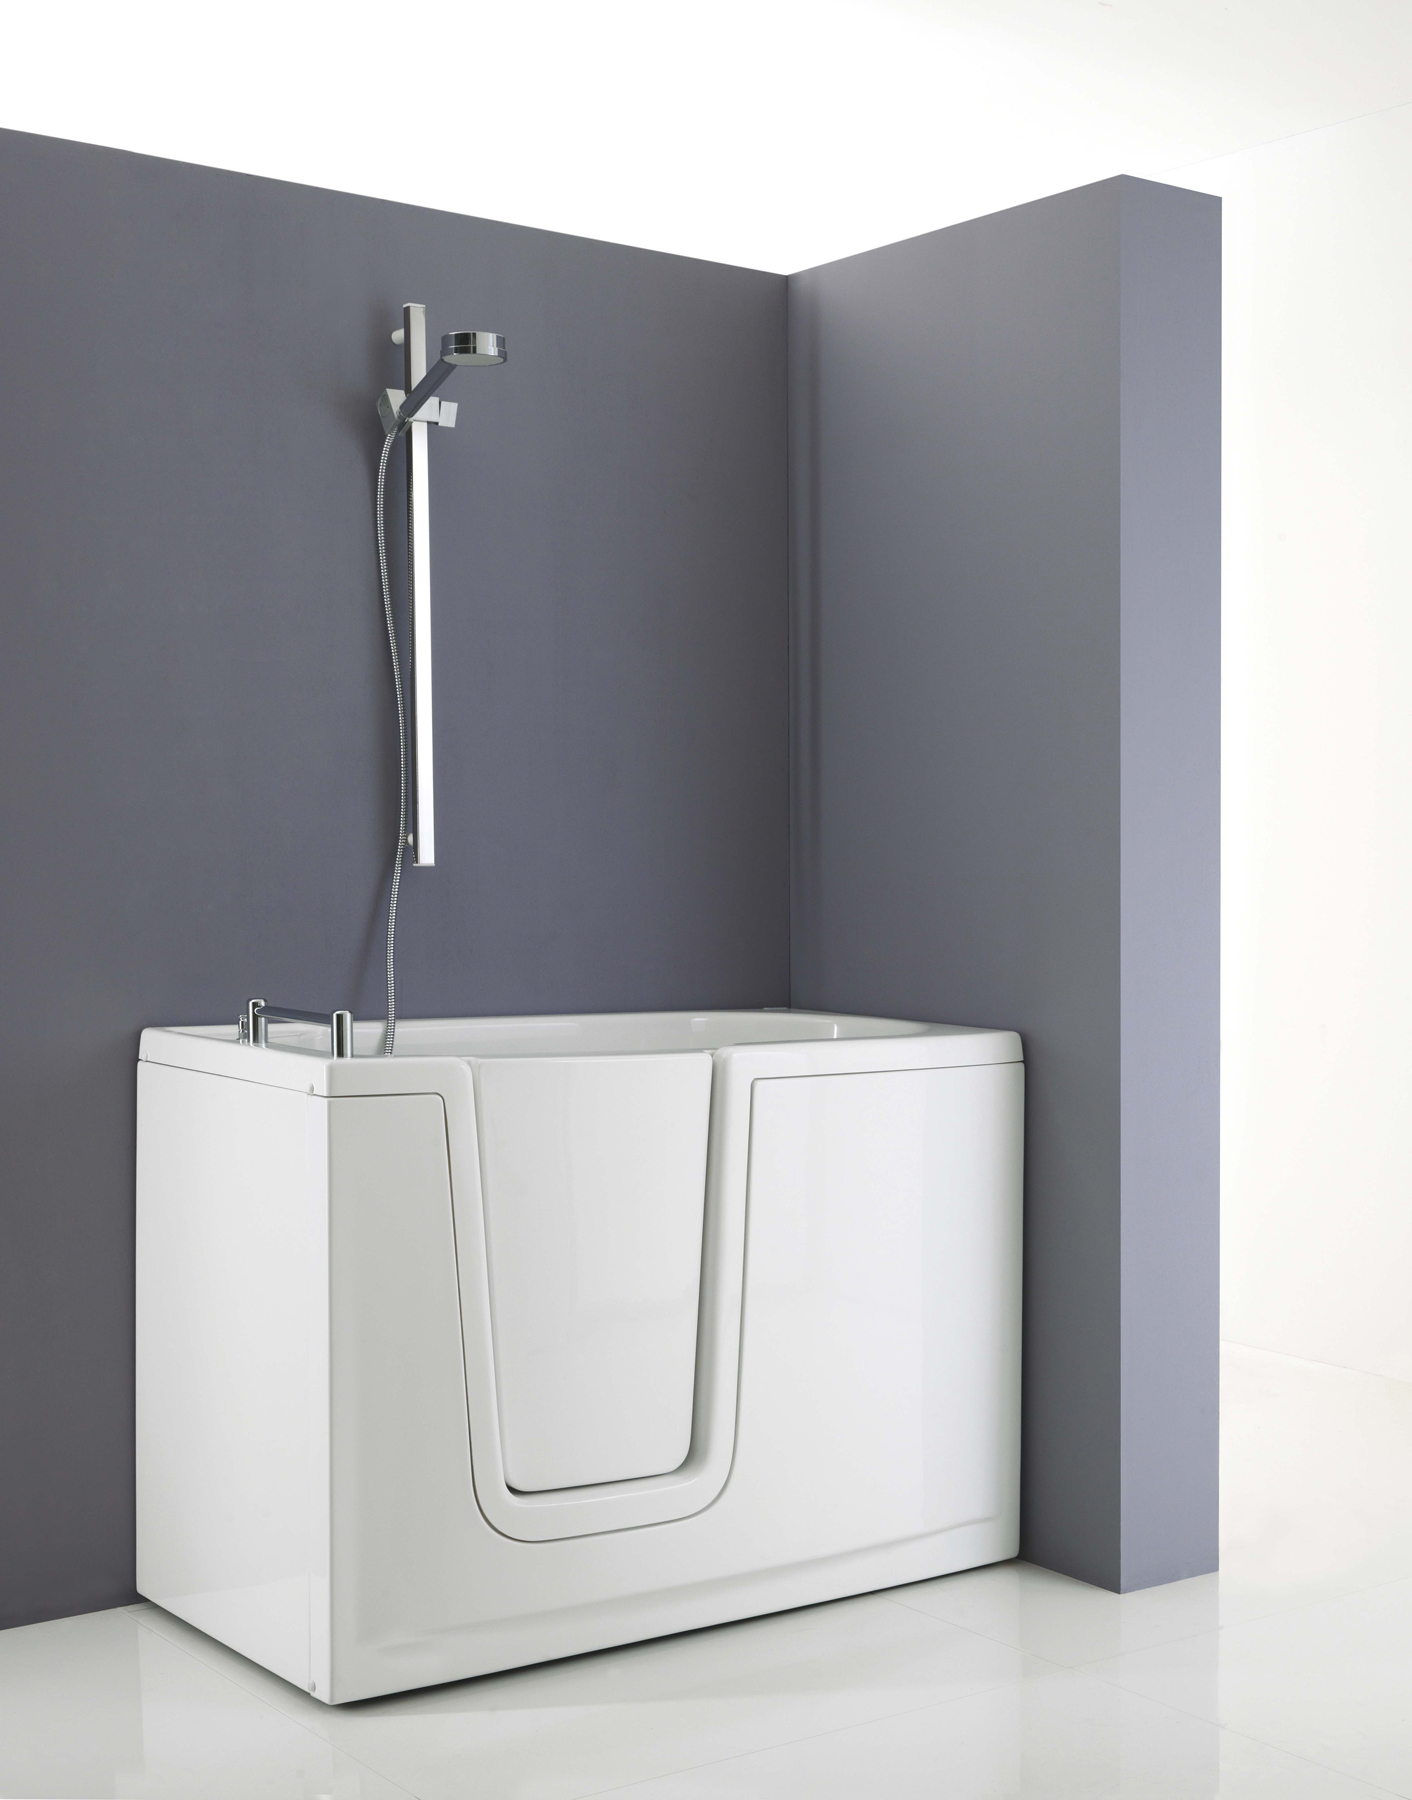 disabled bathtub. walk-in bathtub with internal opening door model 656 - be007 disabled